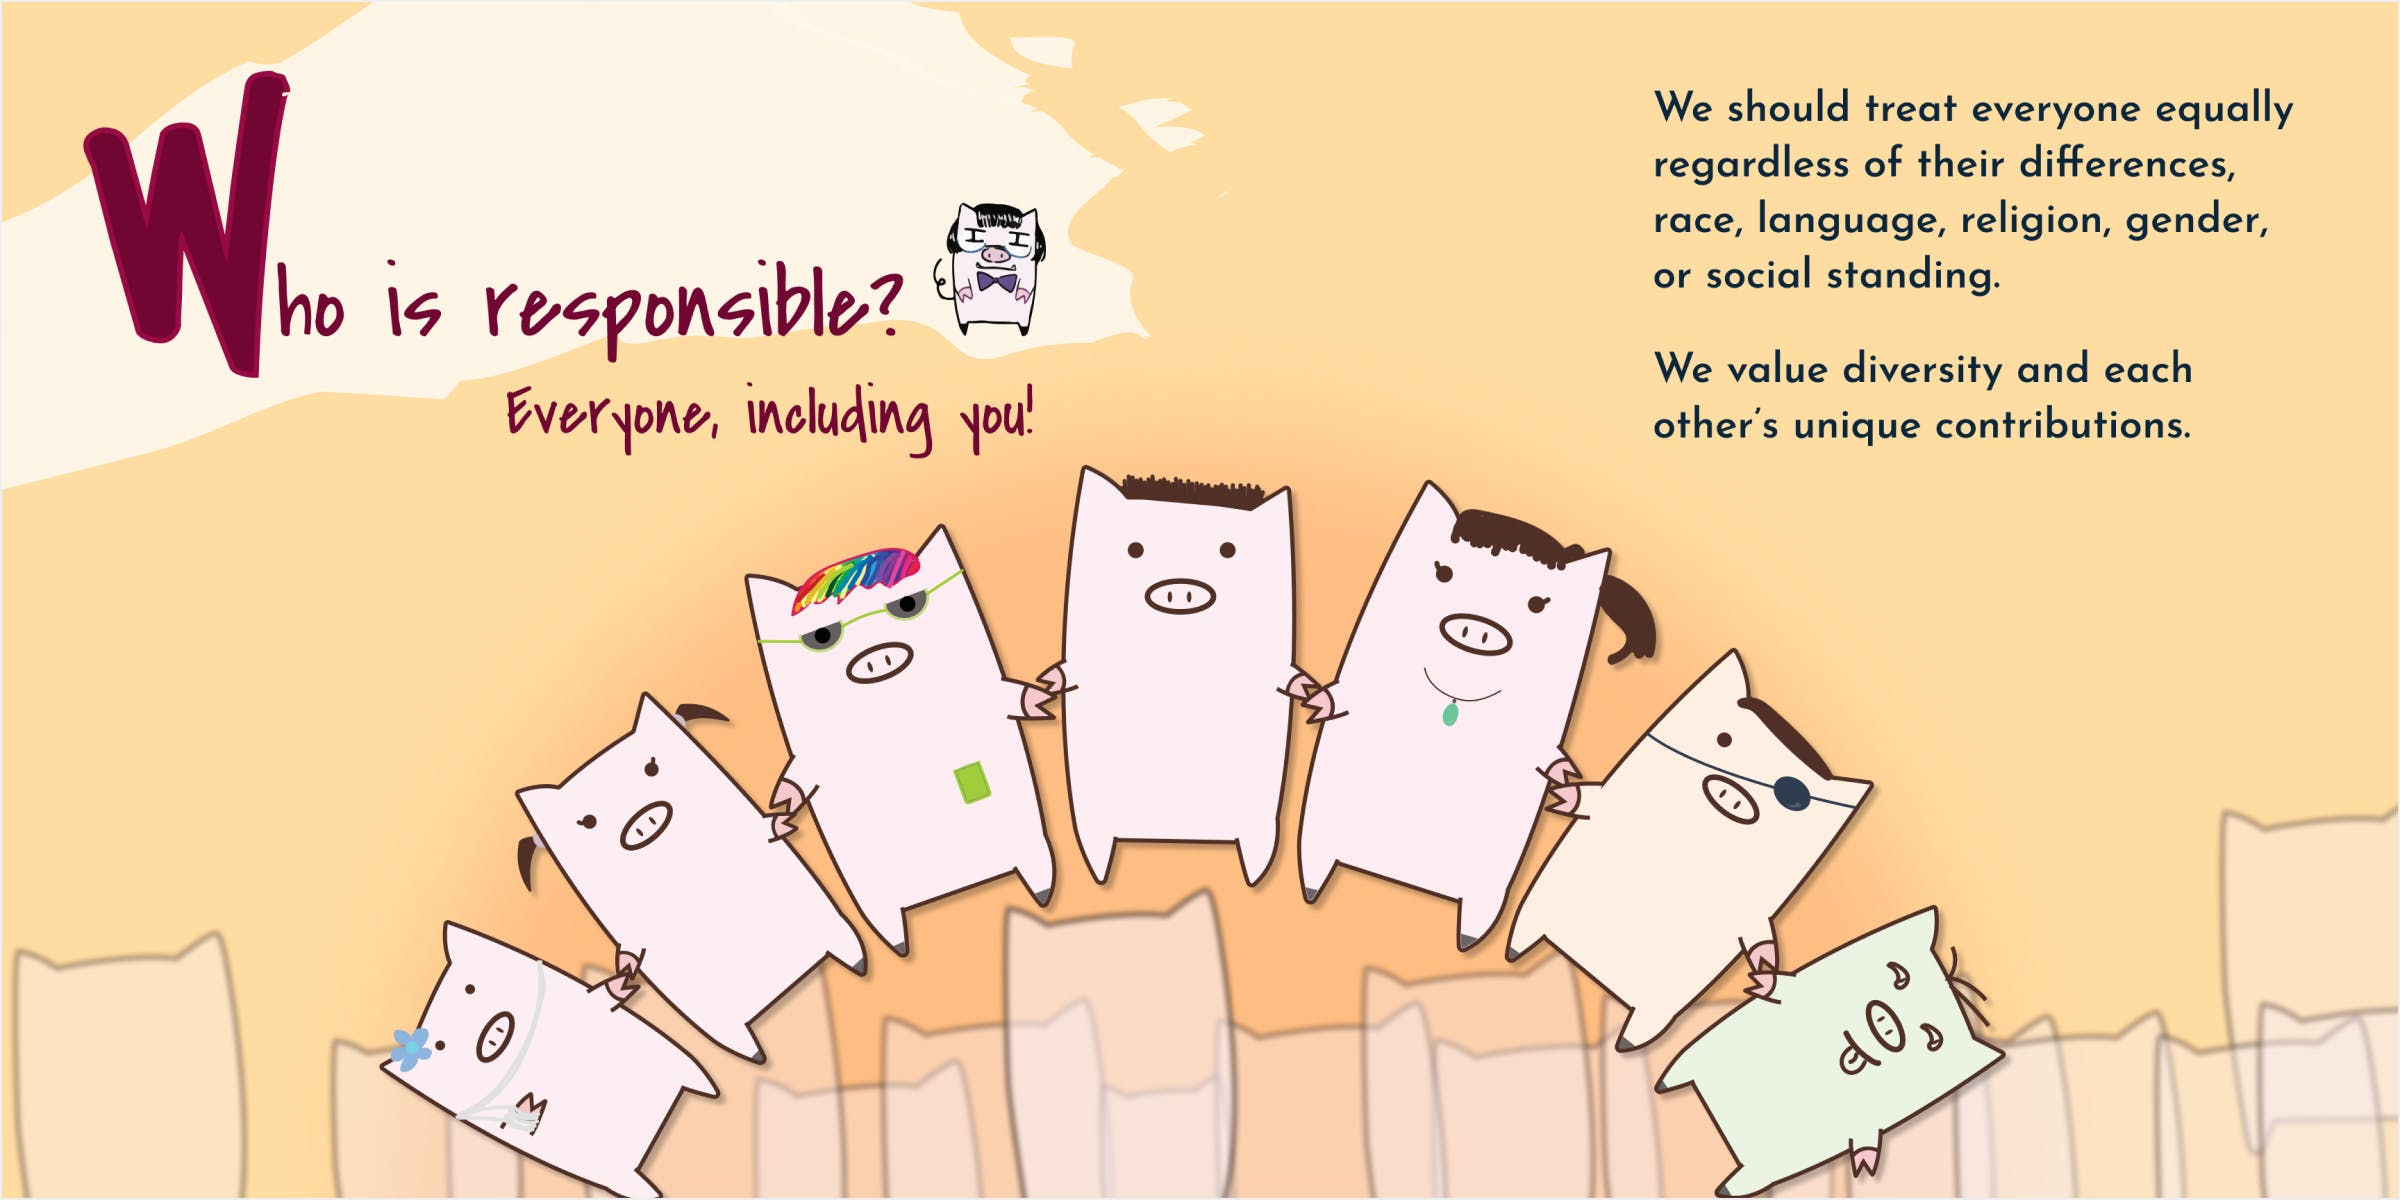 Spread for Who is responsible, that everyone is responsible for making space for others